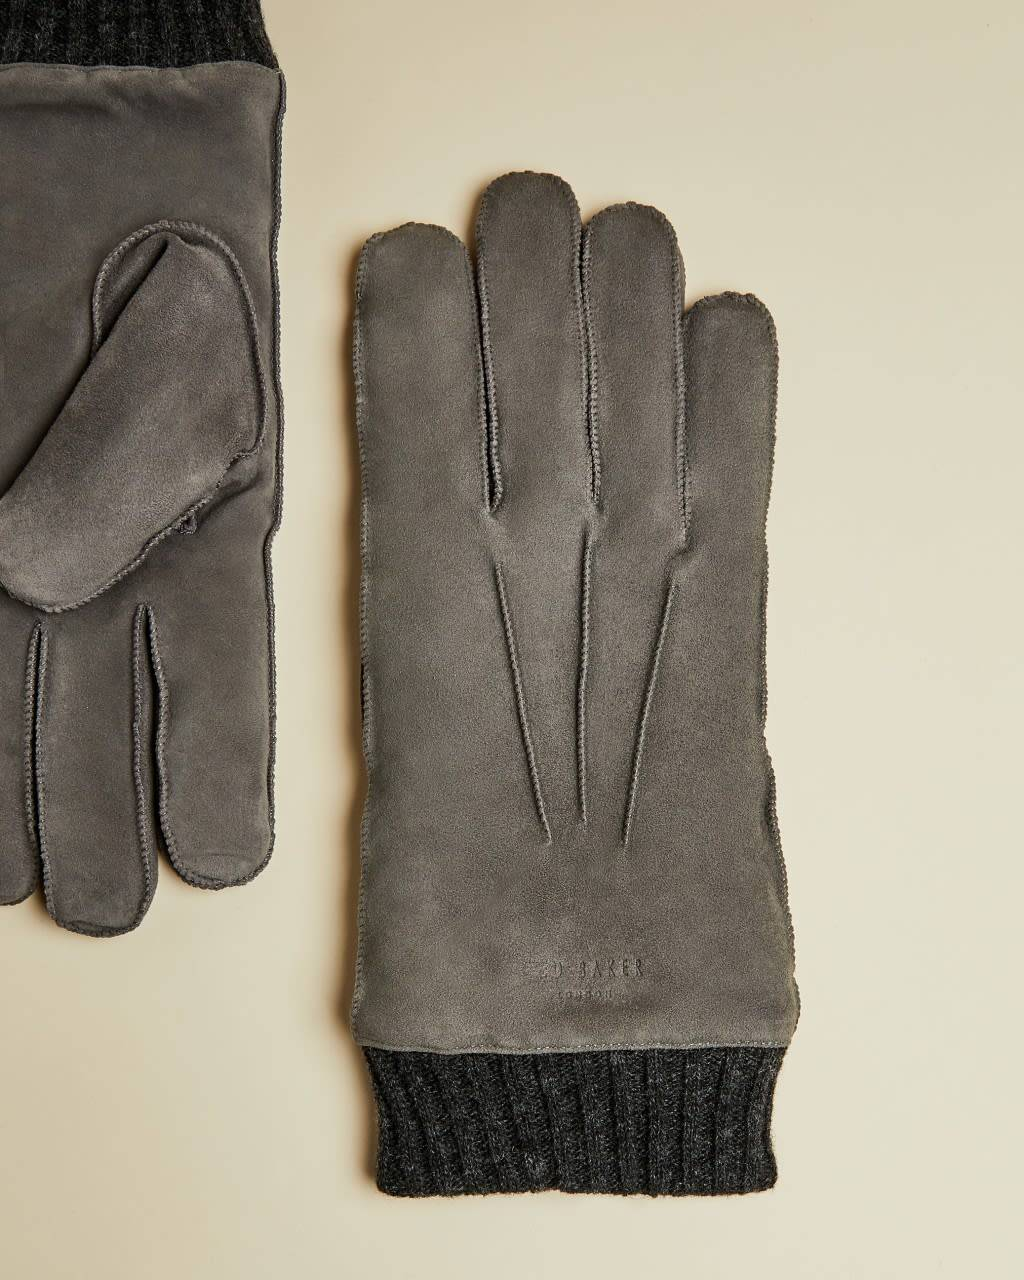 Ted Baker Suede Cuffed Glove  - Grey - Size: Small